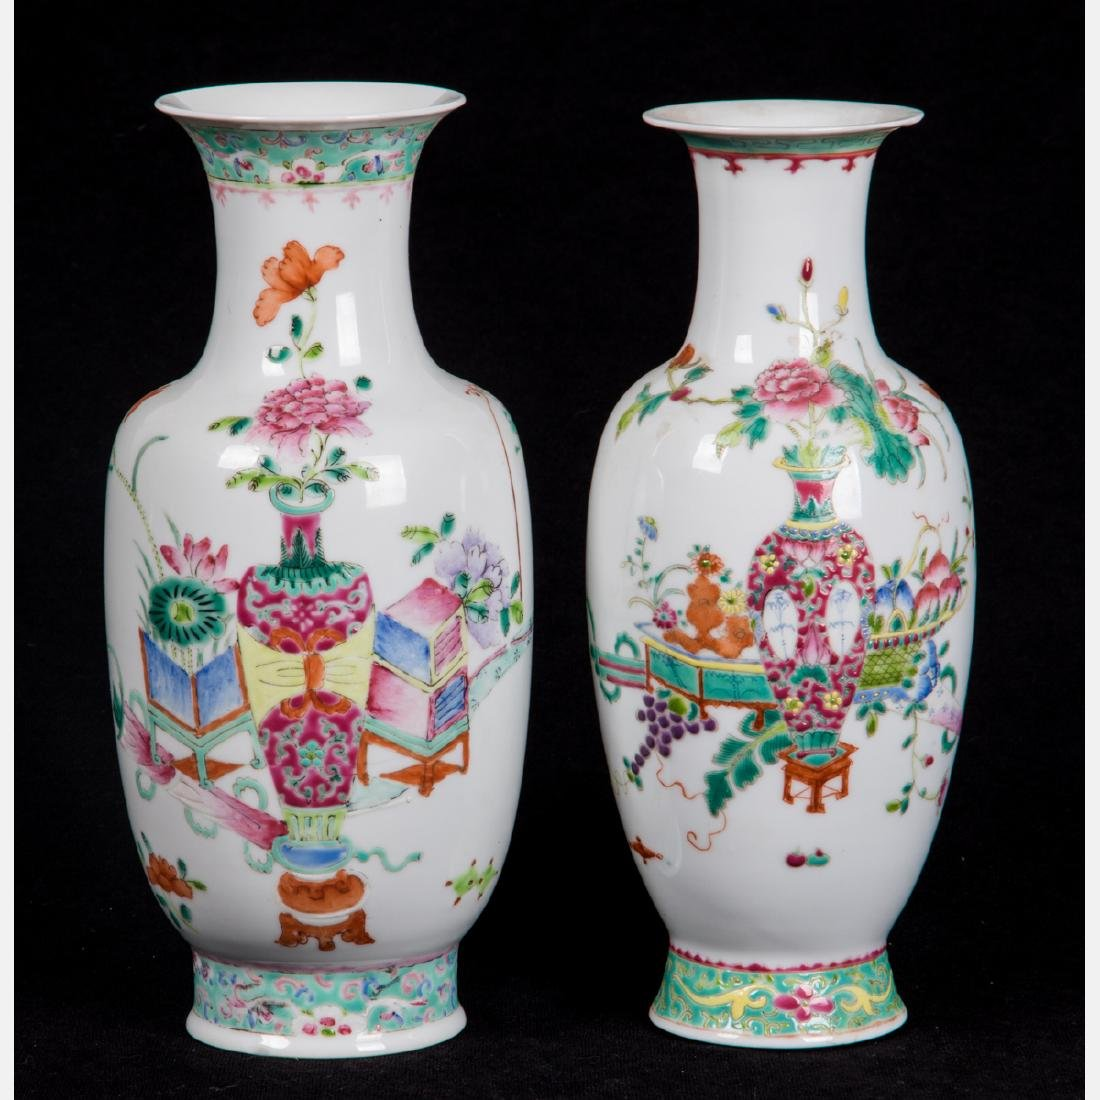 Two Chinese Famille Rose Porcelain Vases, 20th Century.